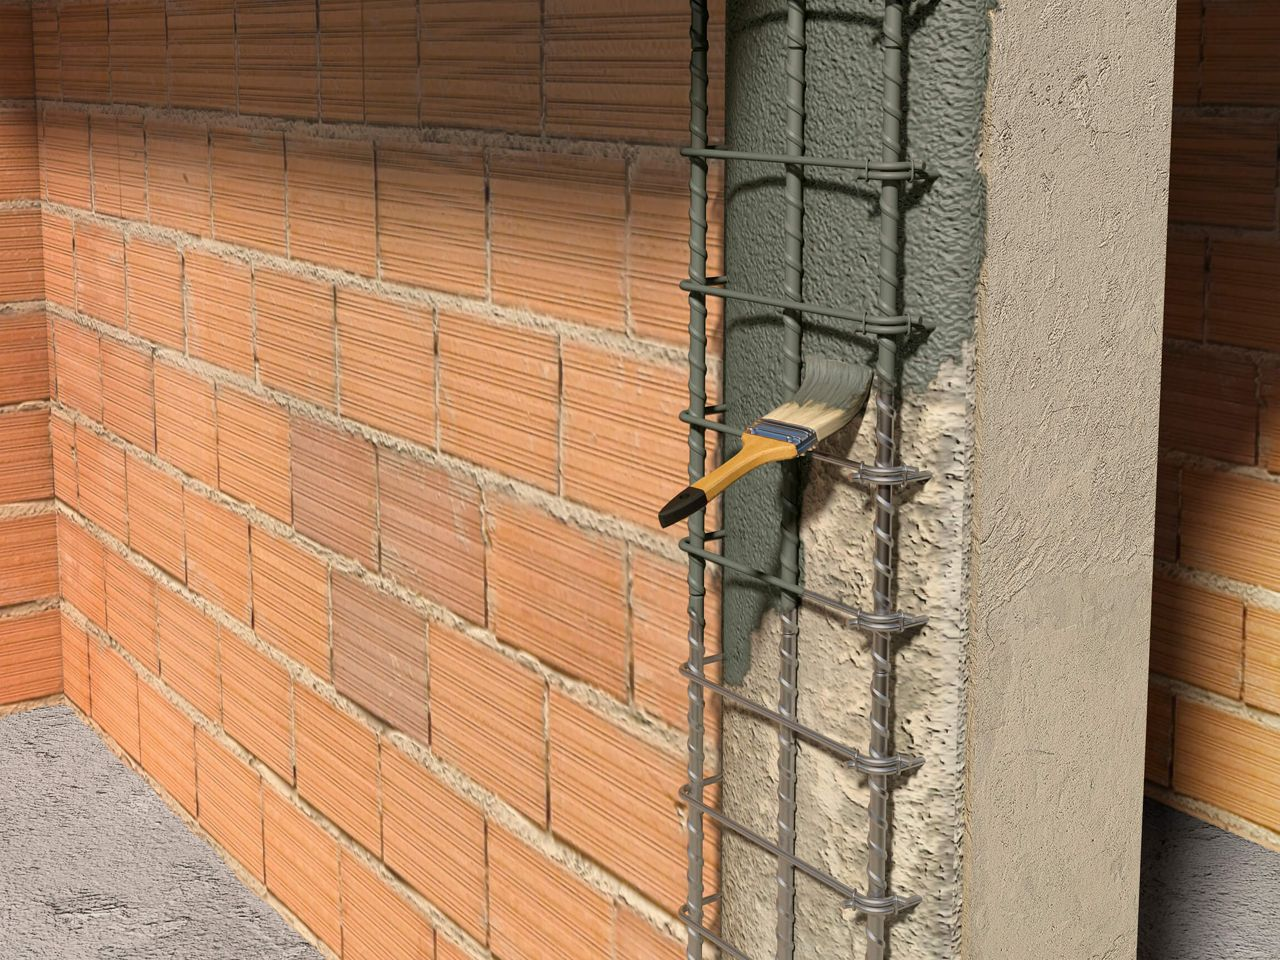 Concrete protection on a steel rebar